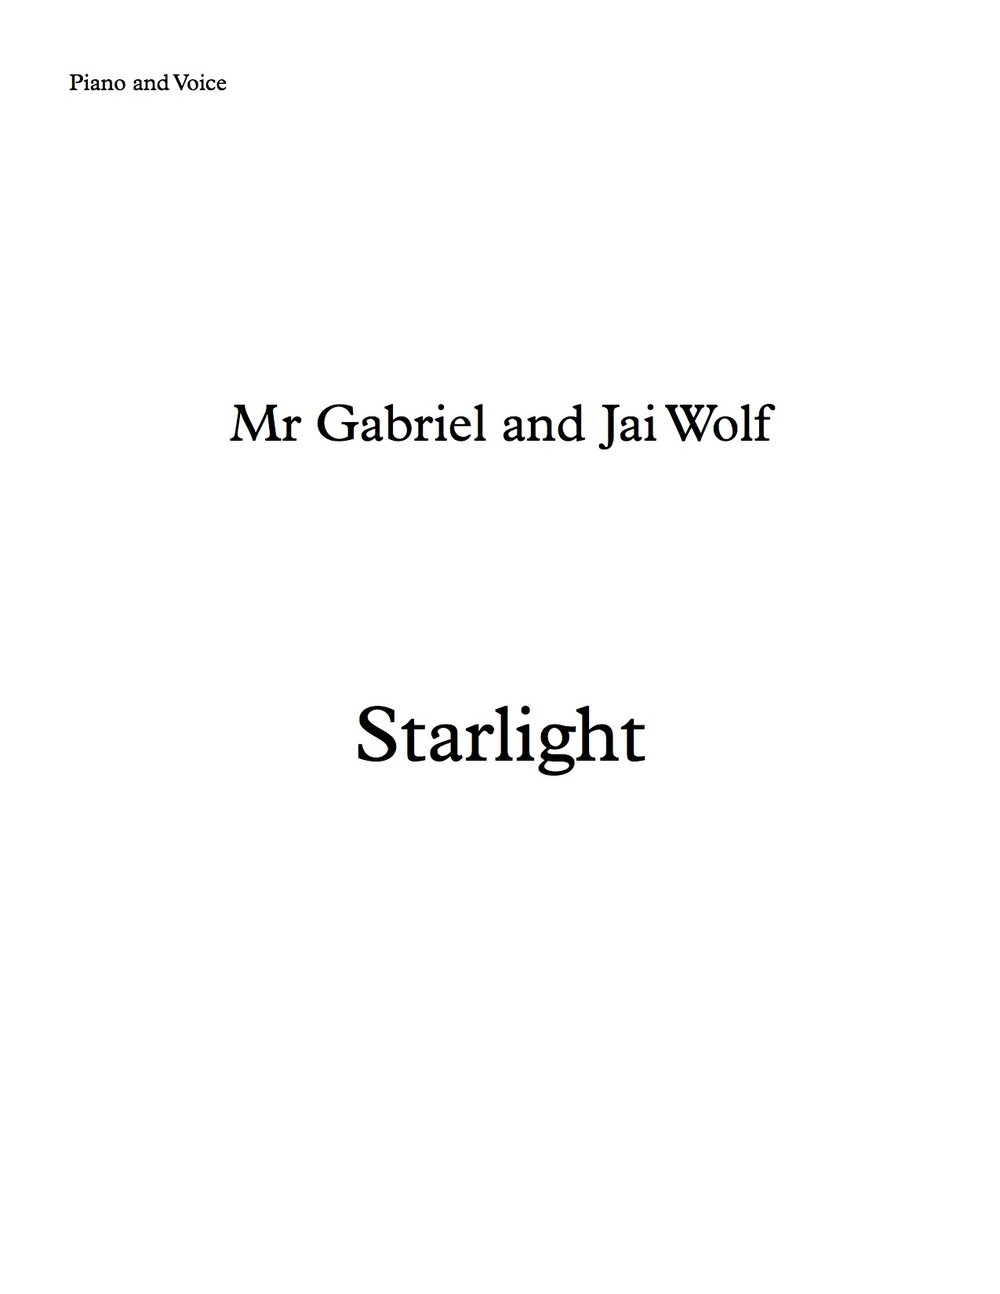 Starlight Score (1st Draft) (1).jpg